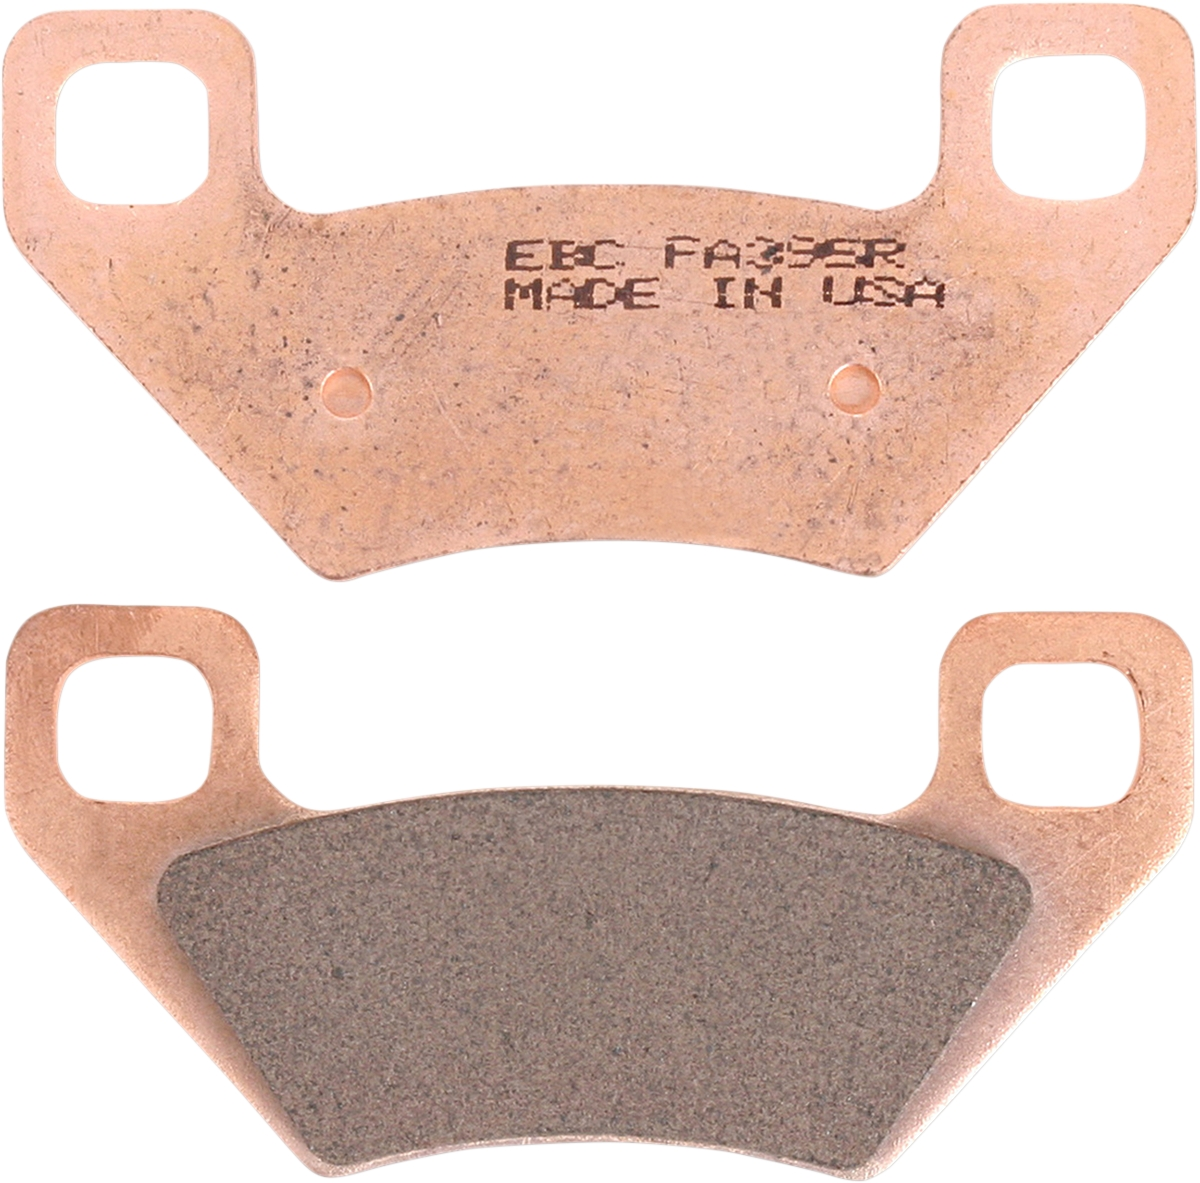 Brake Shoes Cross Reference Chart : Fa sv motorcycle series severe duty brake pads by